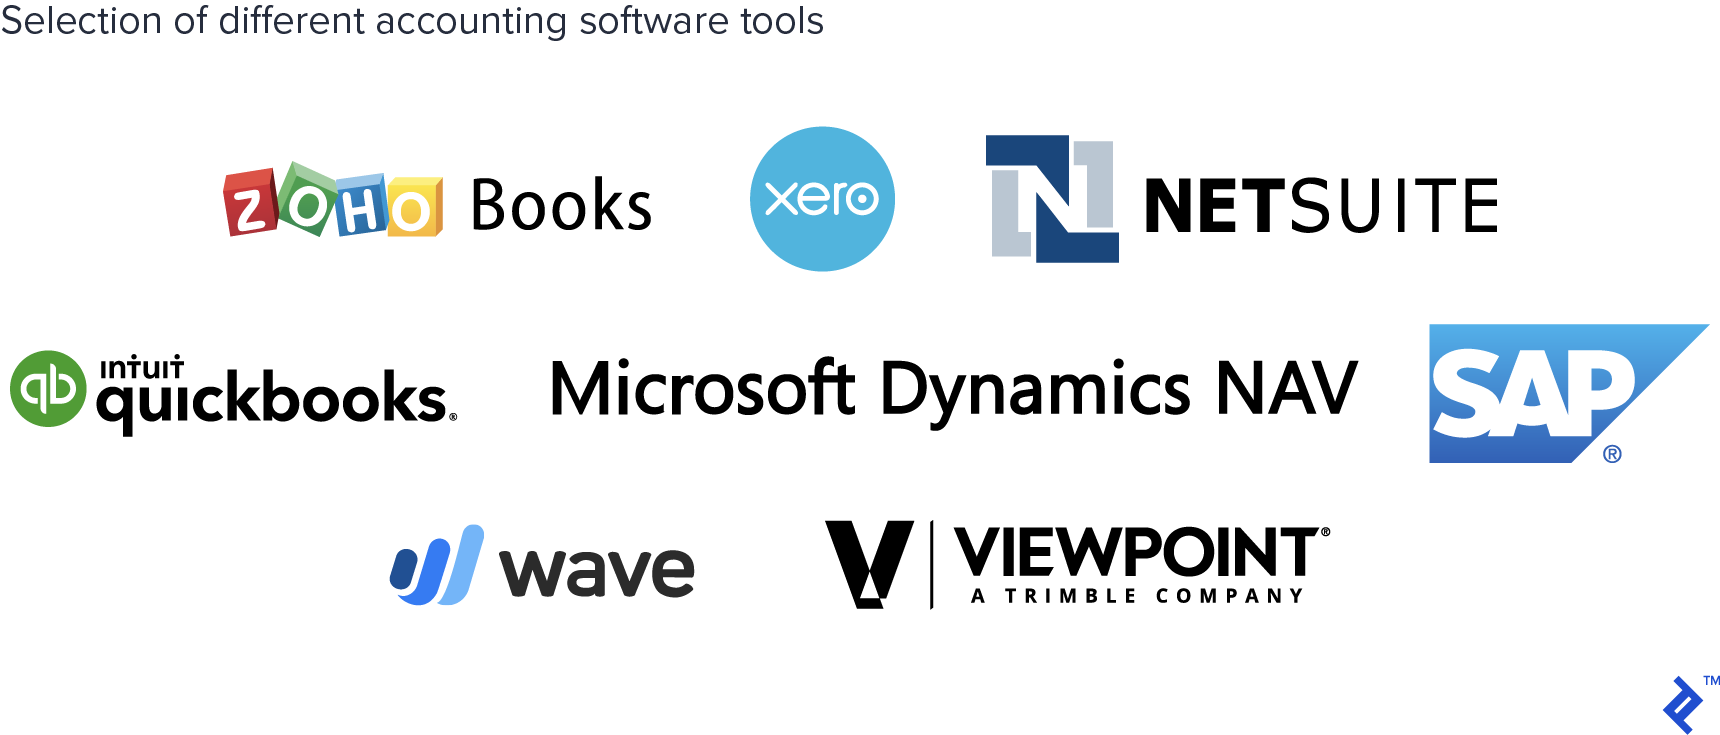 Selection of different accounting software tools